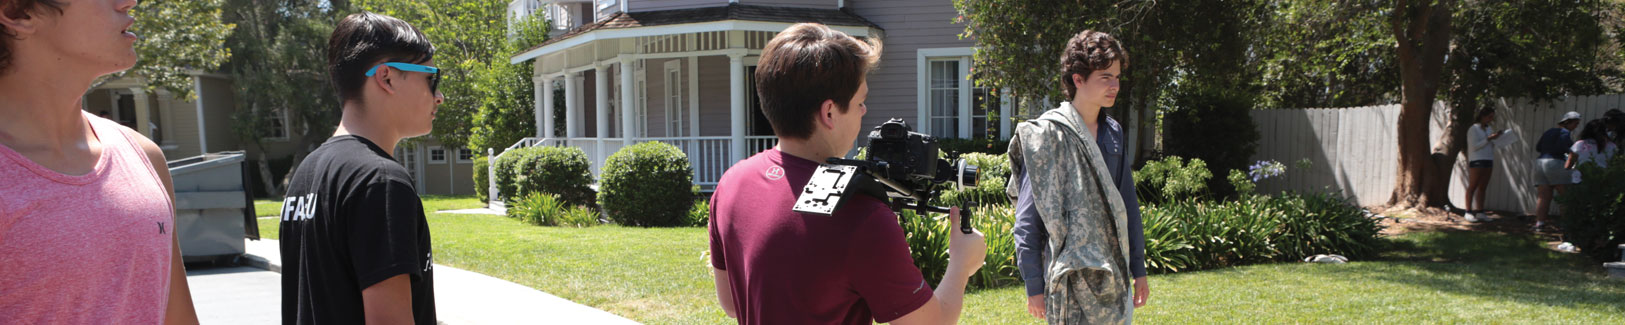 NYFA teen filmmakers shoot a scene with a student actor on the lawn of a large beige house.